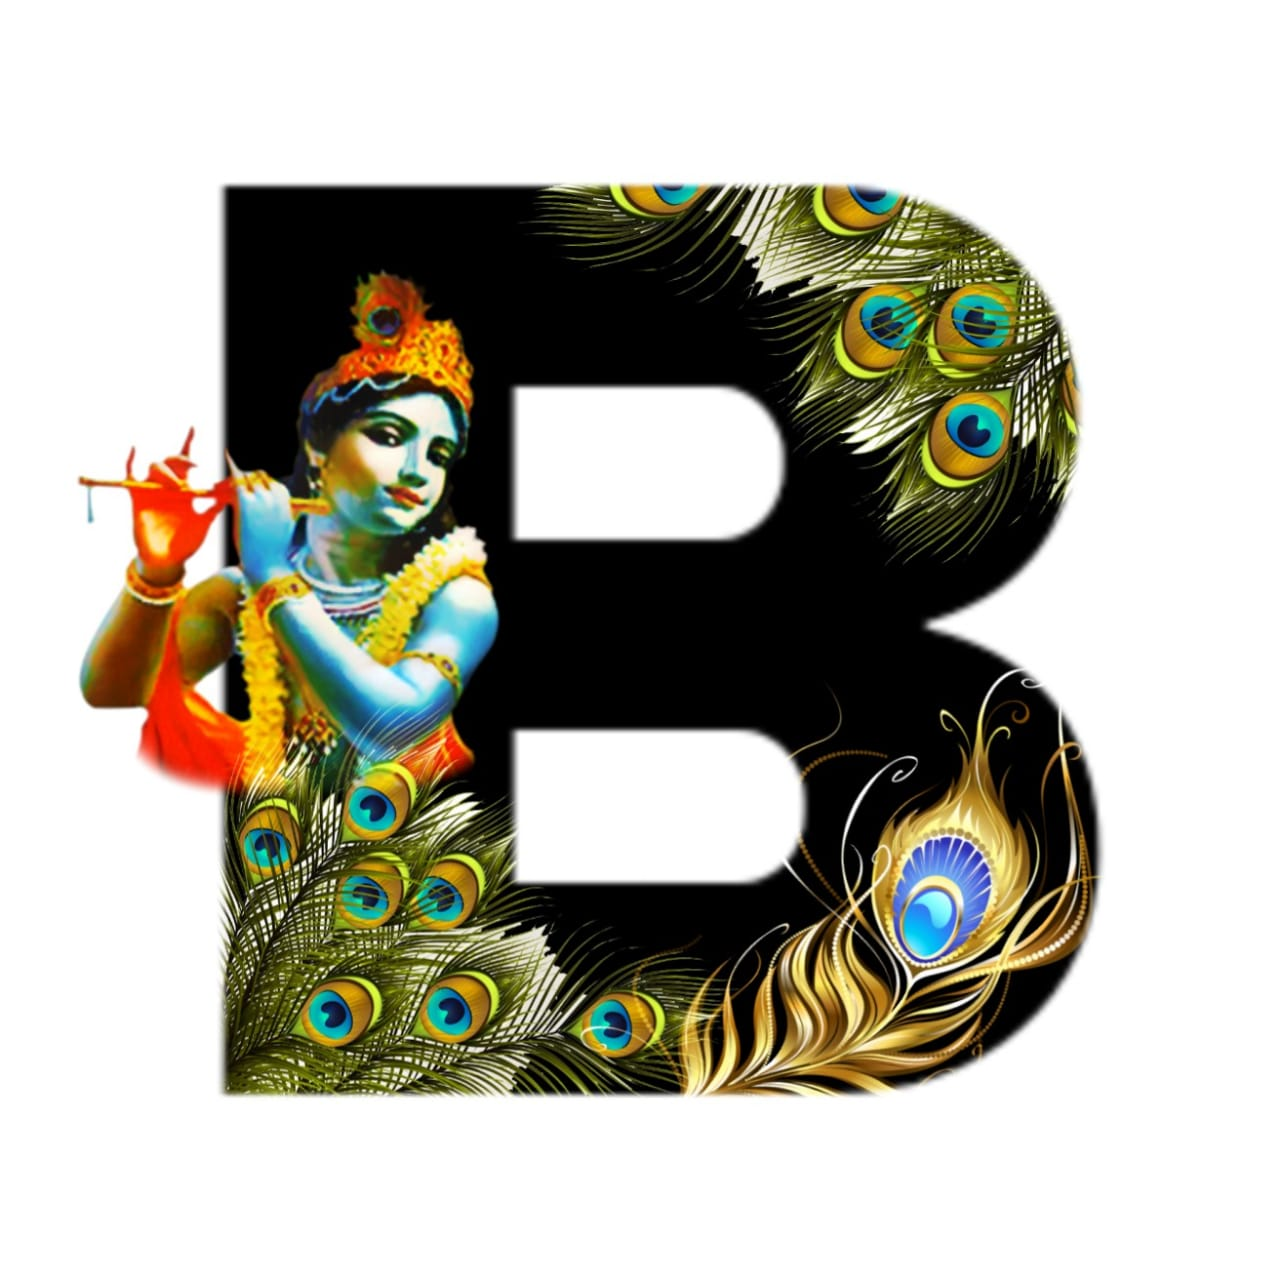 shree krishna alphabet b images